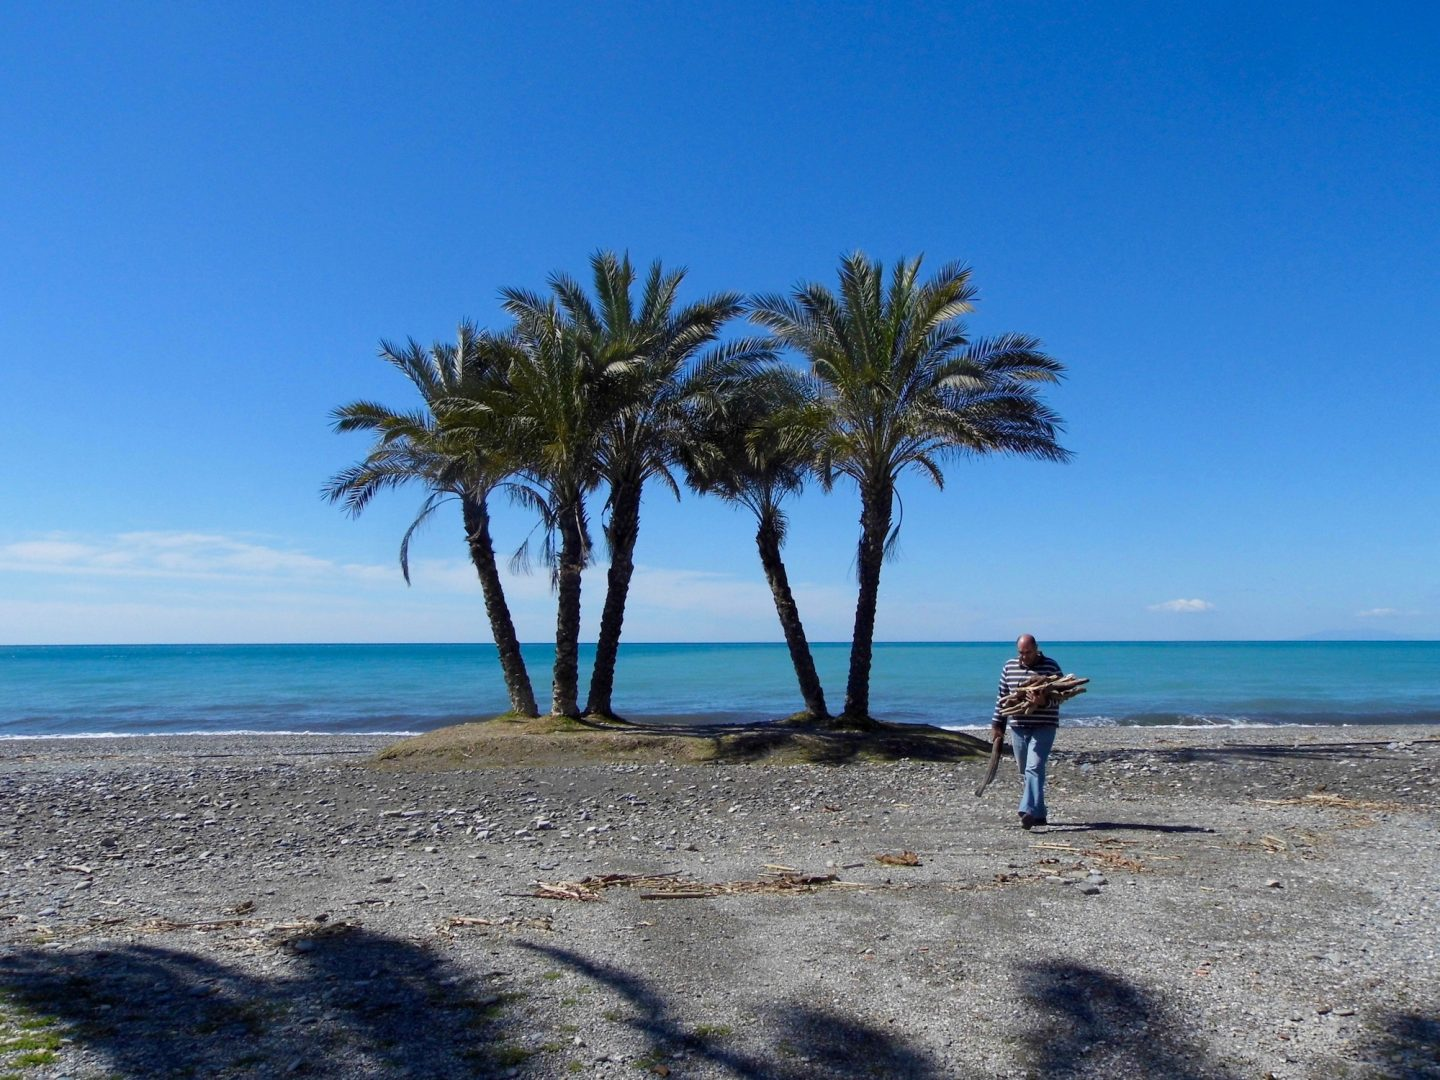 Social distancing: Photos on the theme. Man walking by palm trees on seafront in La Herradura, Spain.